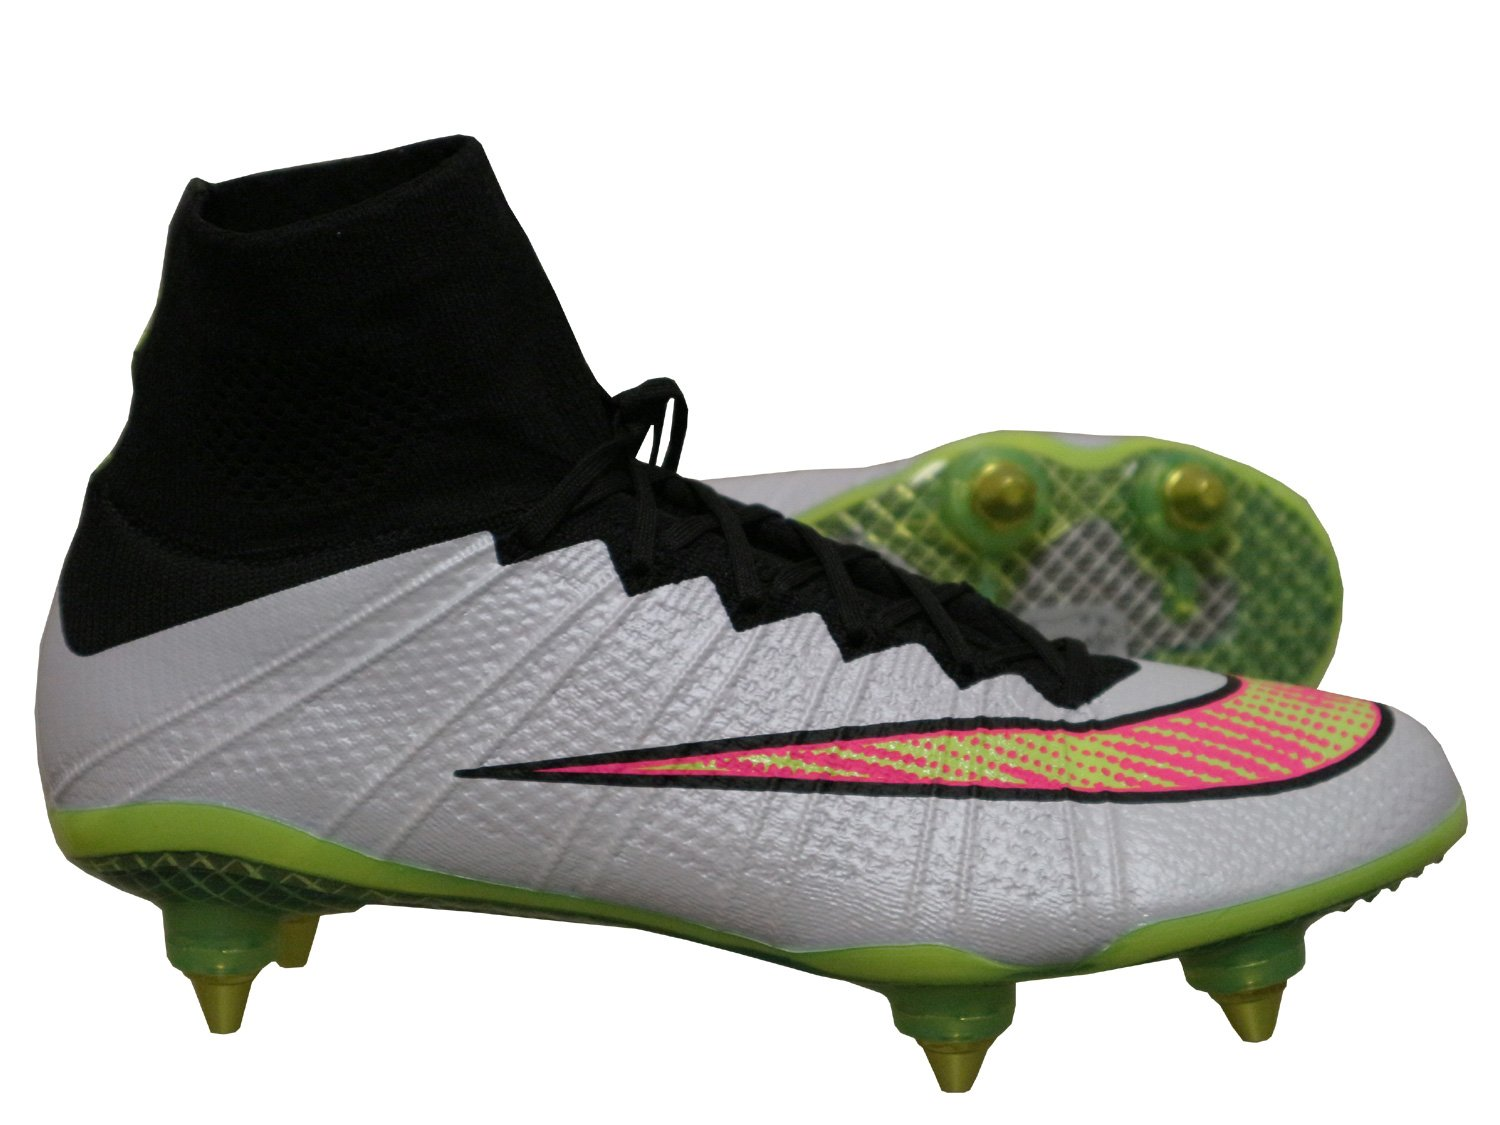 063ee2e4dc93d Nike Mercurial Superfly SG Studs Football Boots with Compression Socks White:  Amazon.co.uk: Sports & Outdoors